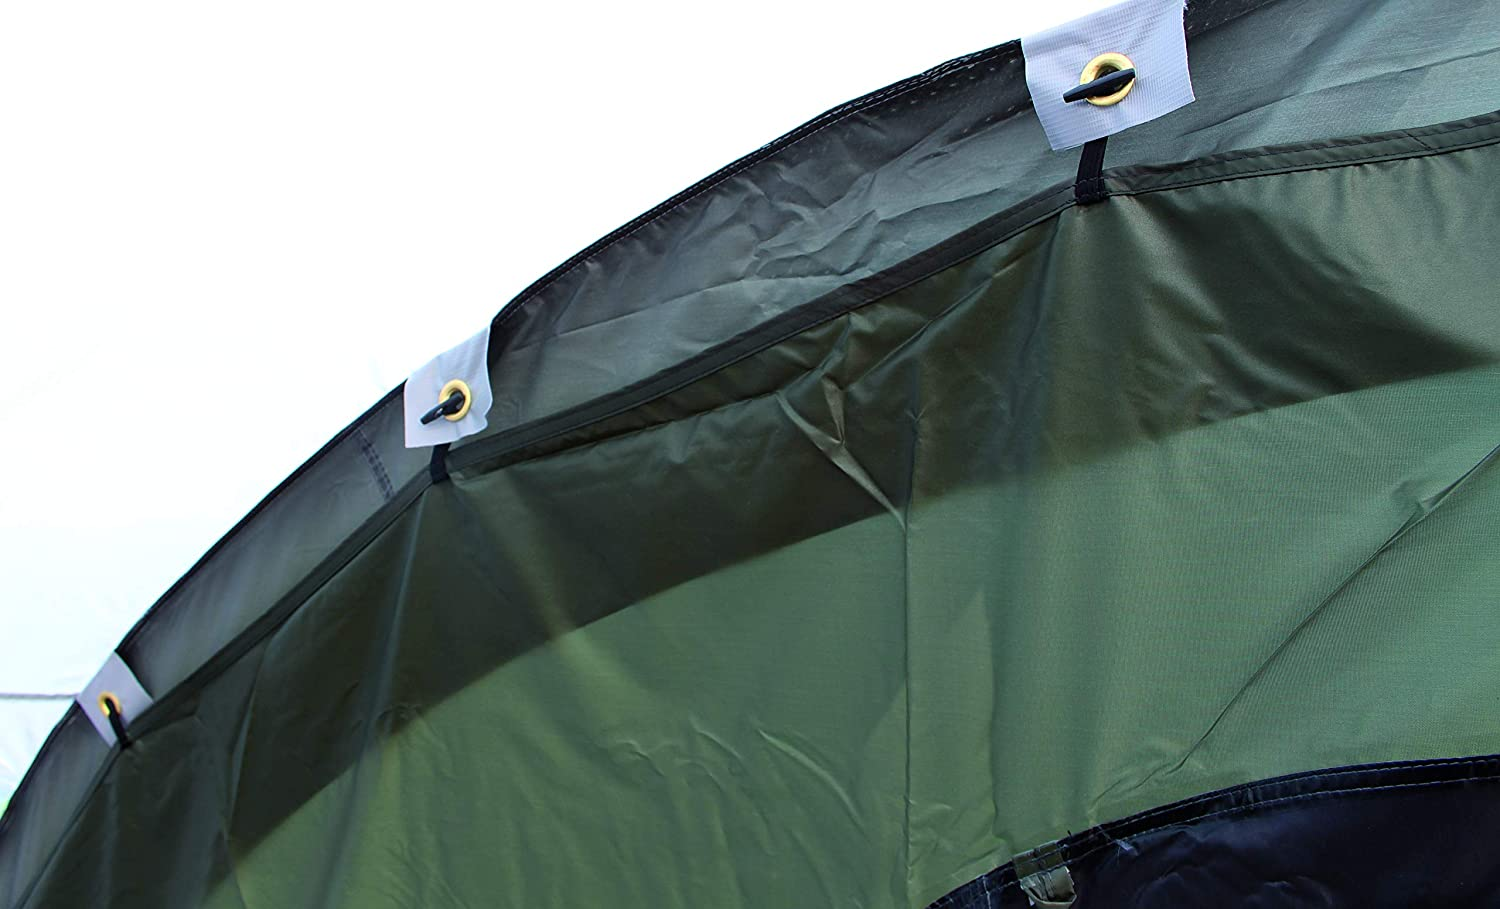 Gazebo Side Panel with Window Water Resistant compatible with the Event Shelter Deluxe XL 4.5 x 4.5 m Green Coleman Gazebo Event Shelter Sun Wall High Sun Protection 50+